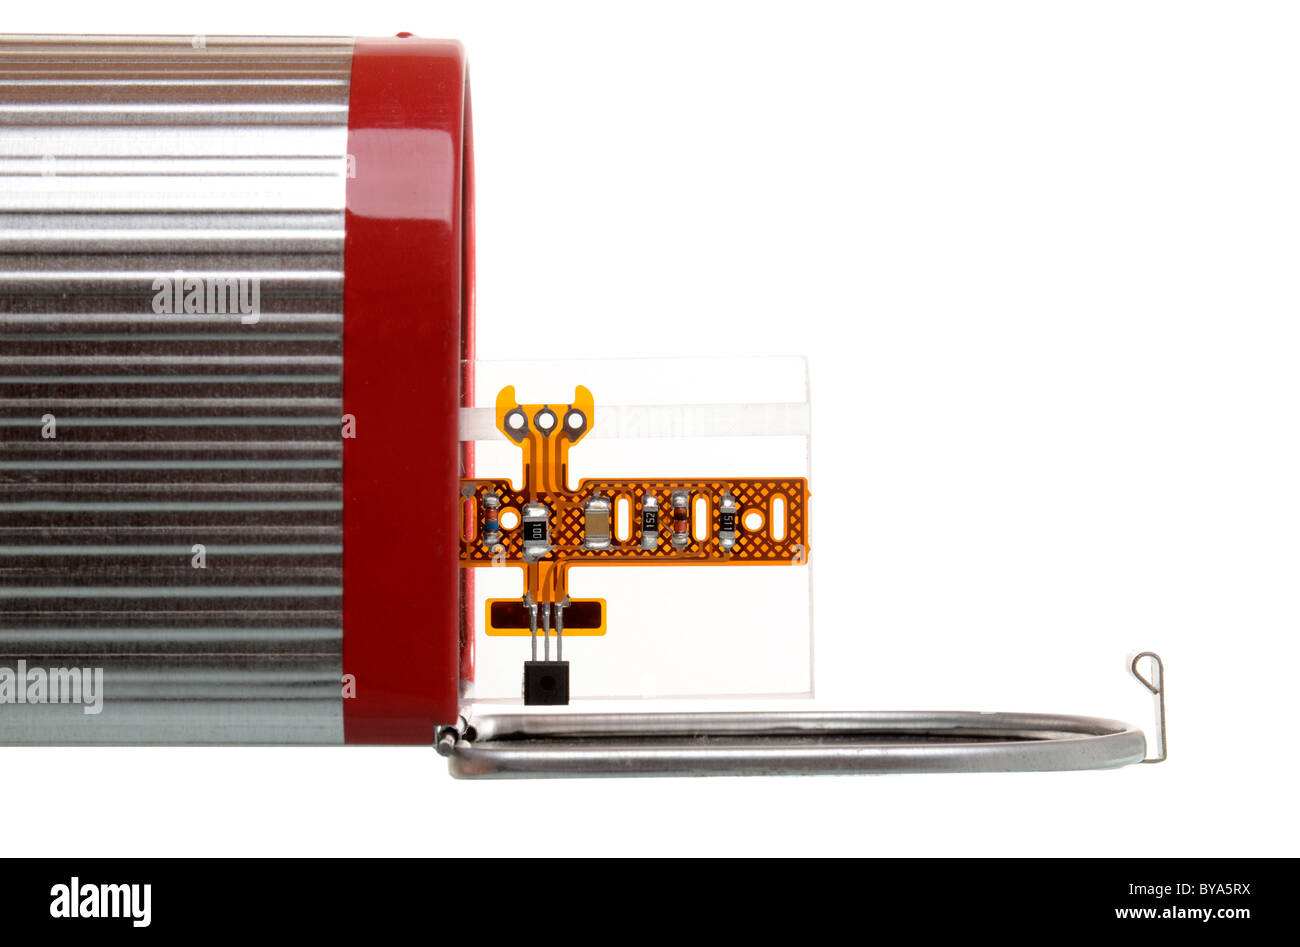 American mailbox with electronic component, symbolic image for electronic mail - Stock Image